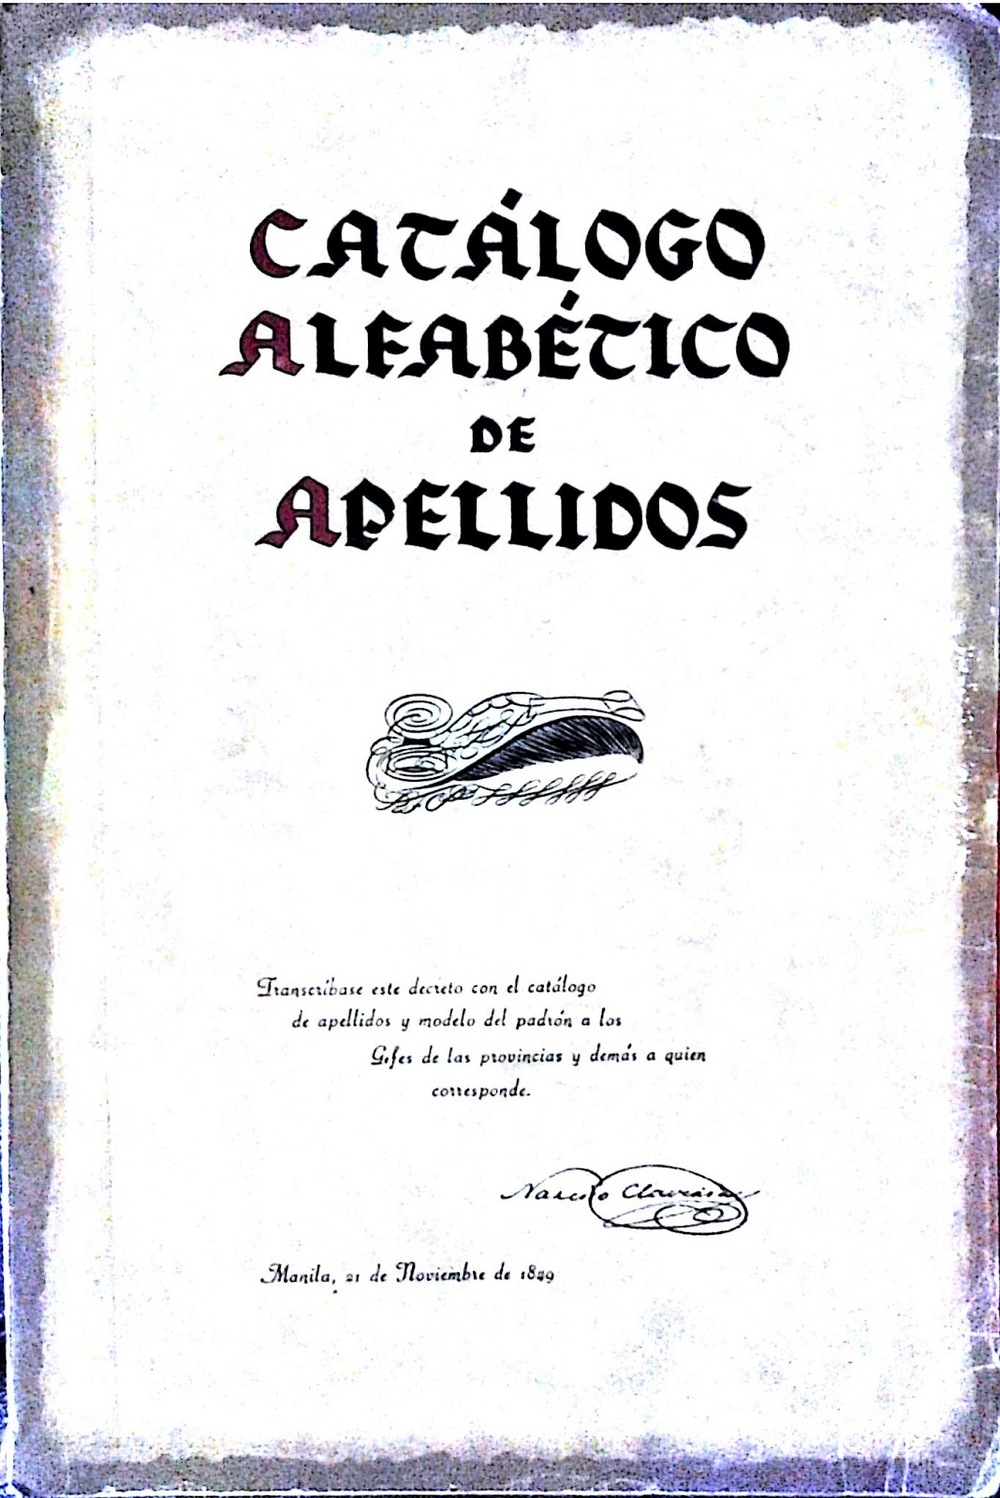 Catalogo de Apellidos  (Source: pilipino-express.com)